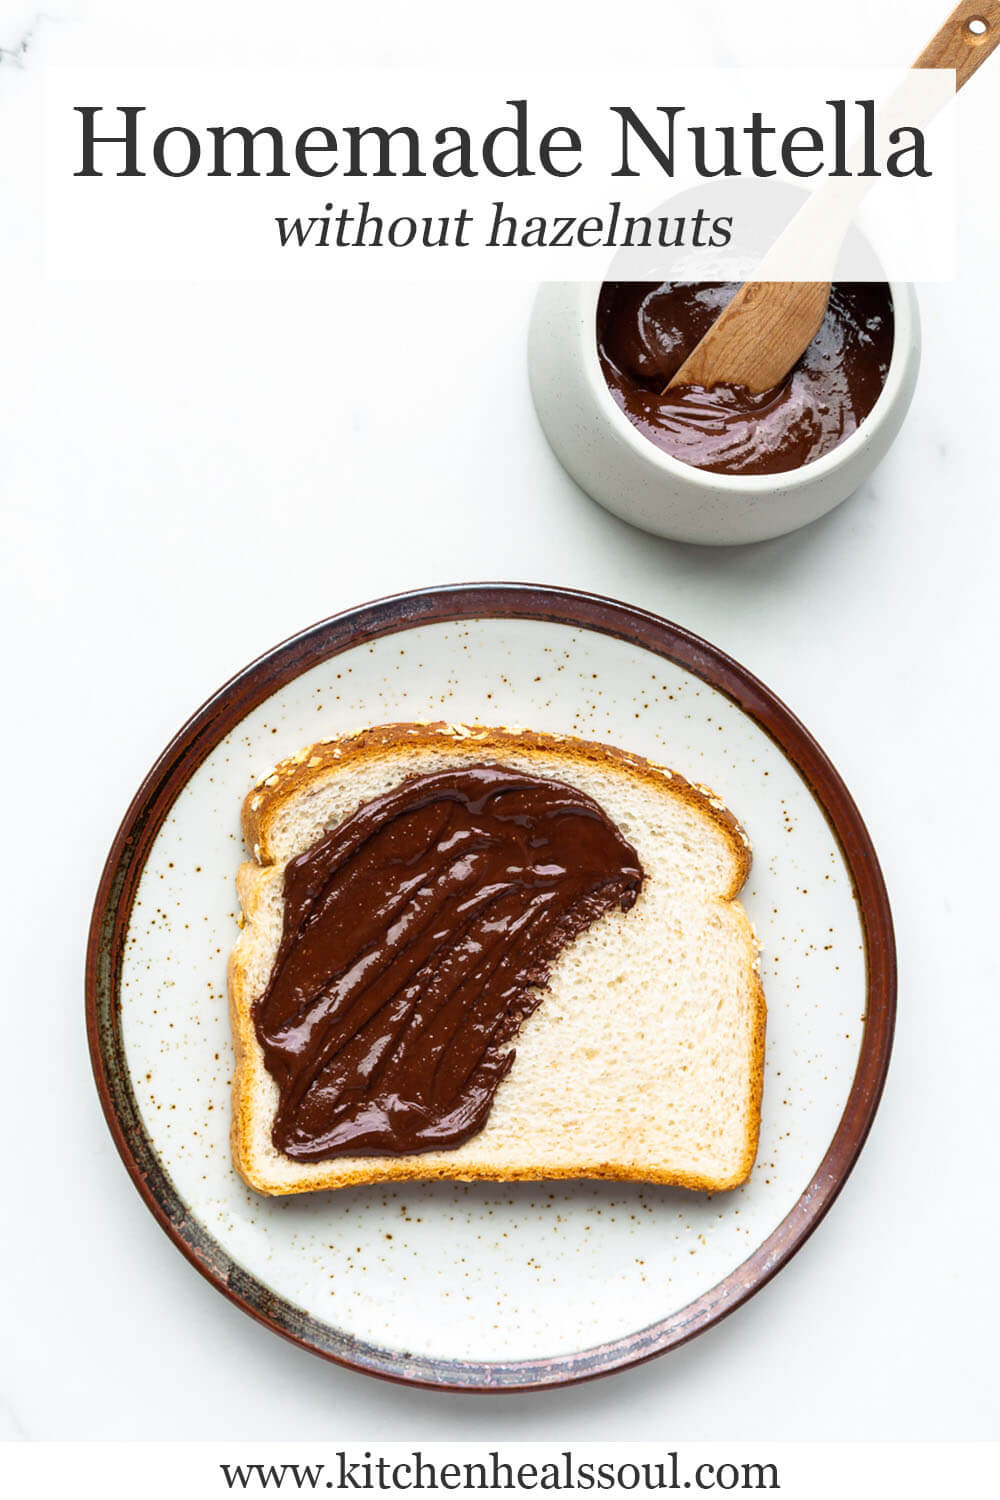 Homemade chocolate peanut butter spread on white bread on ceramic speckled plate with brown rim, with bowl of spread and wood knife nearby.